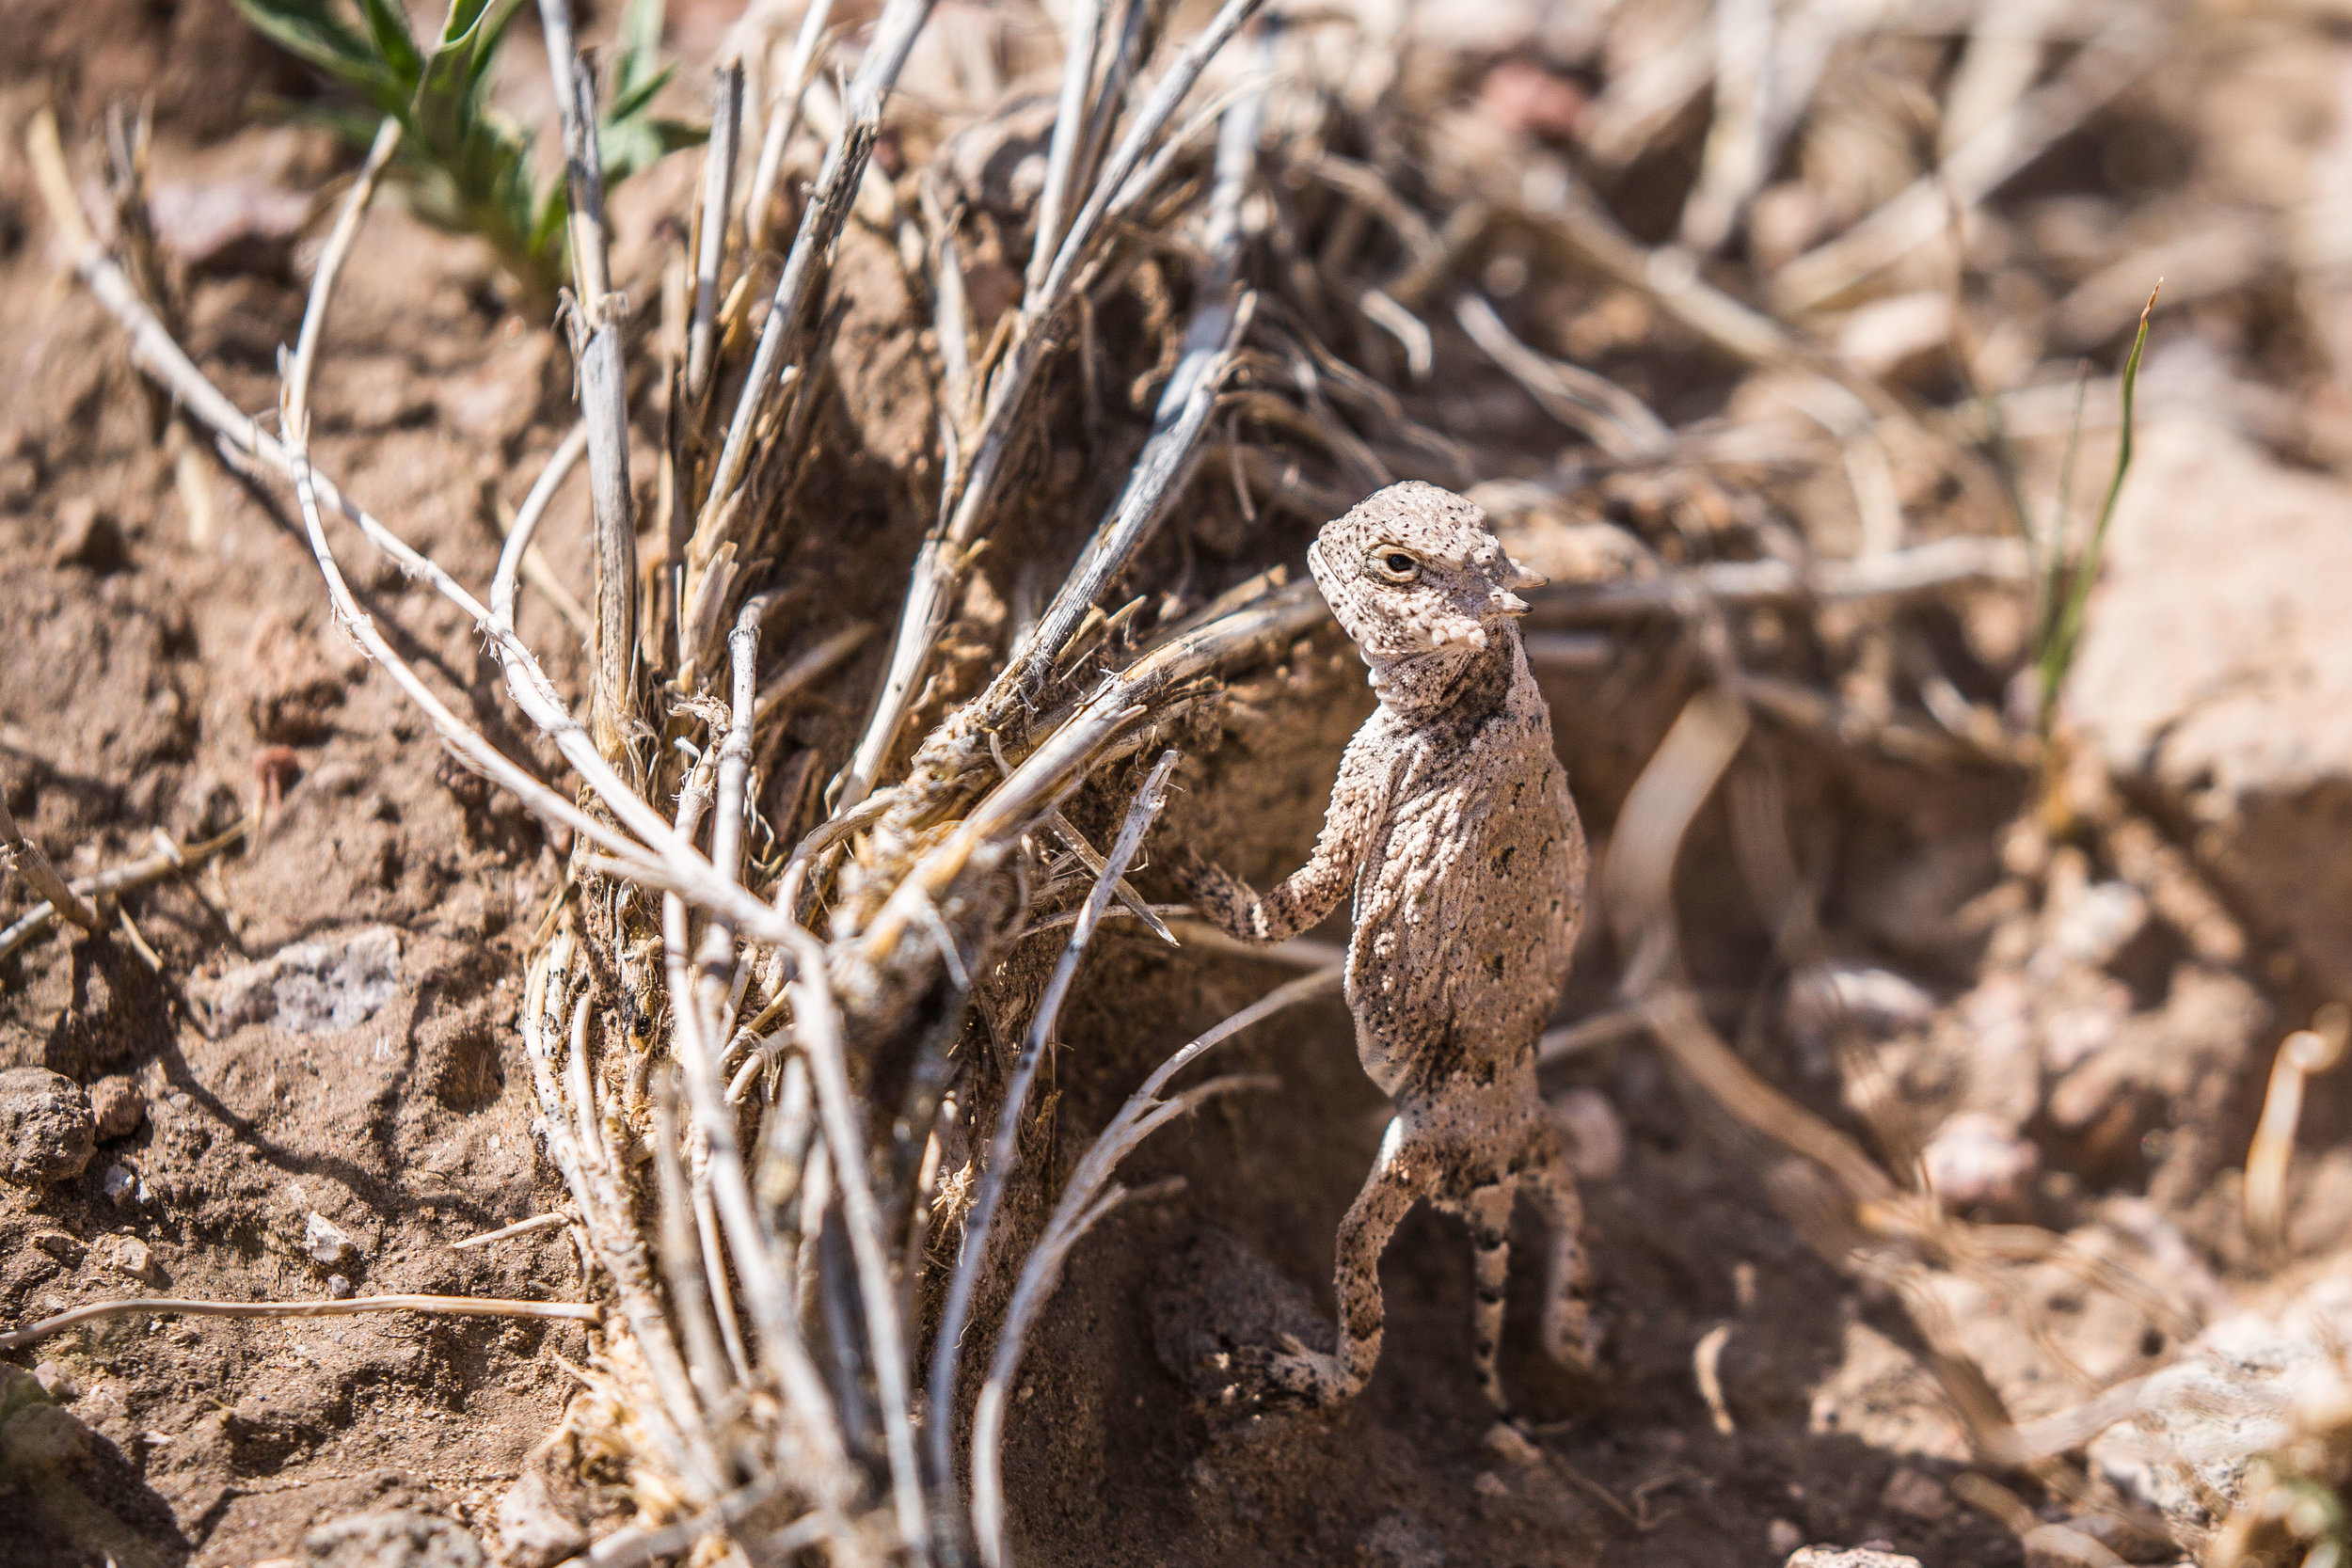 roundtail horned lizard (Phrynosoma modestum) - A roundtail horned lizard at Organ Mountains-Desert Peaks NM observing us as we observe it.